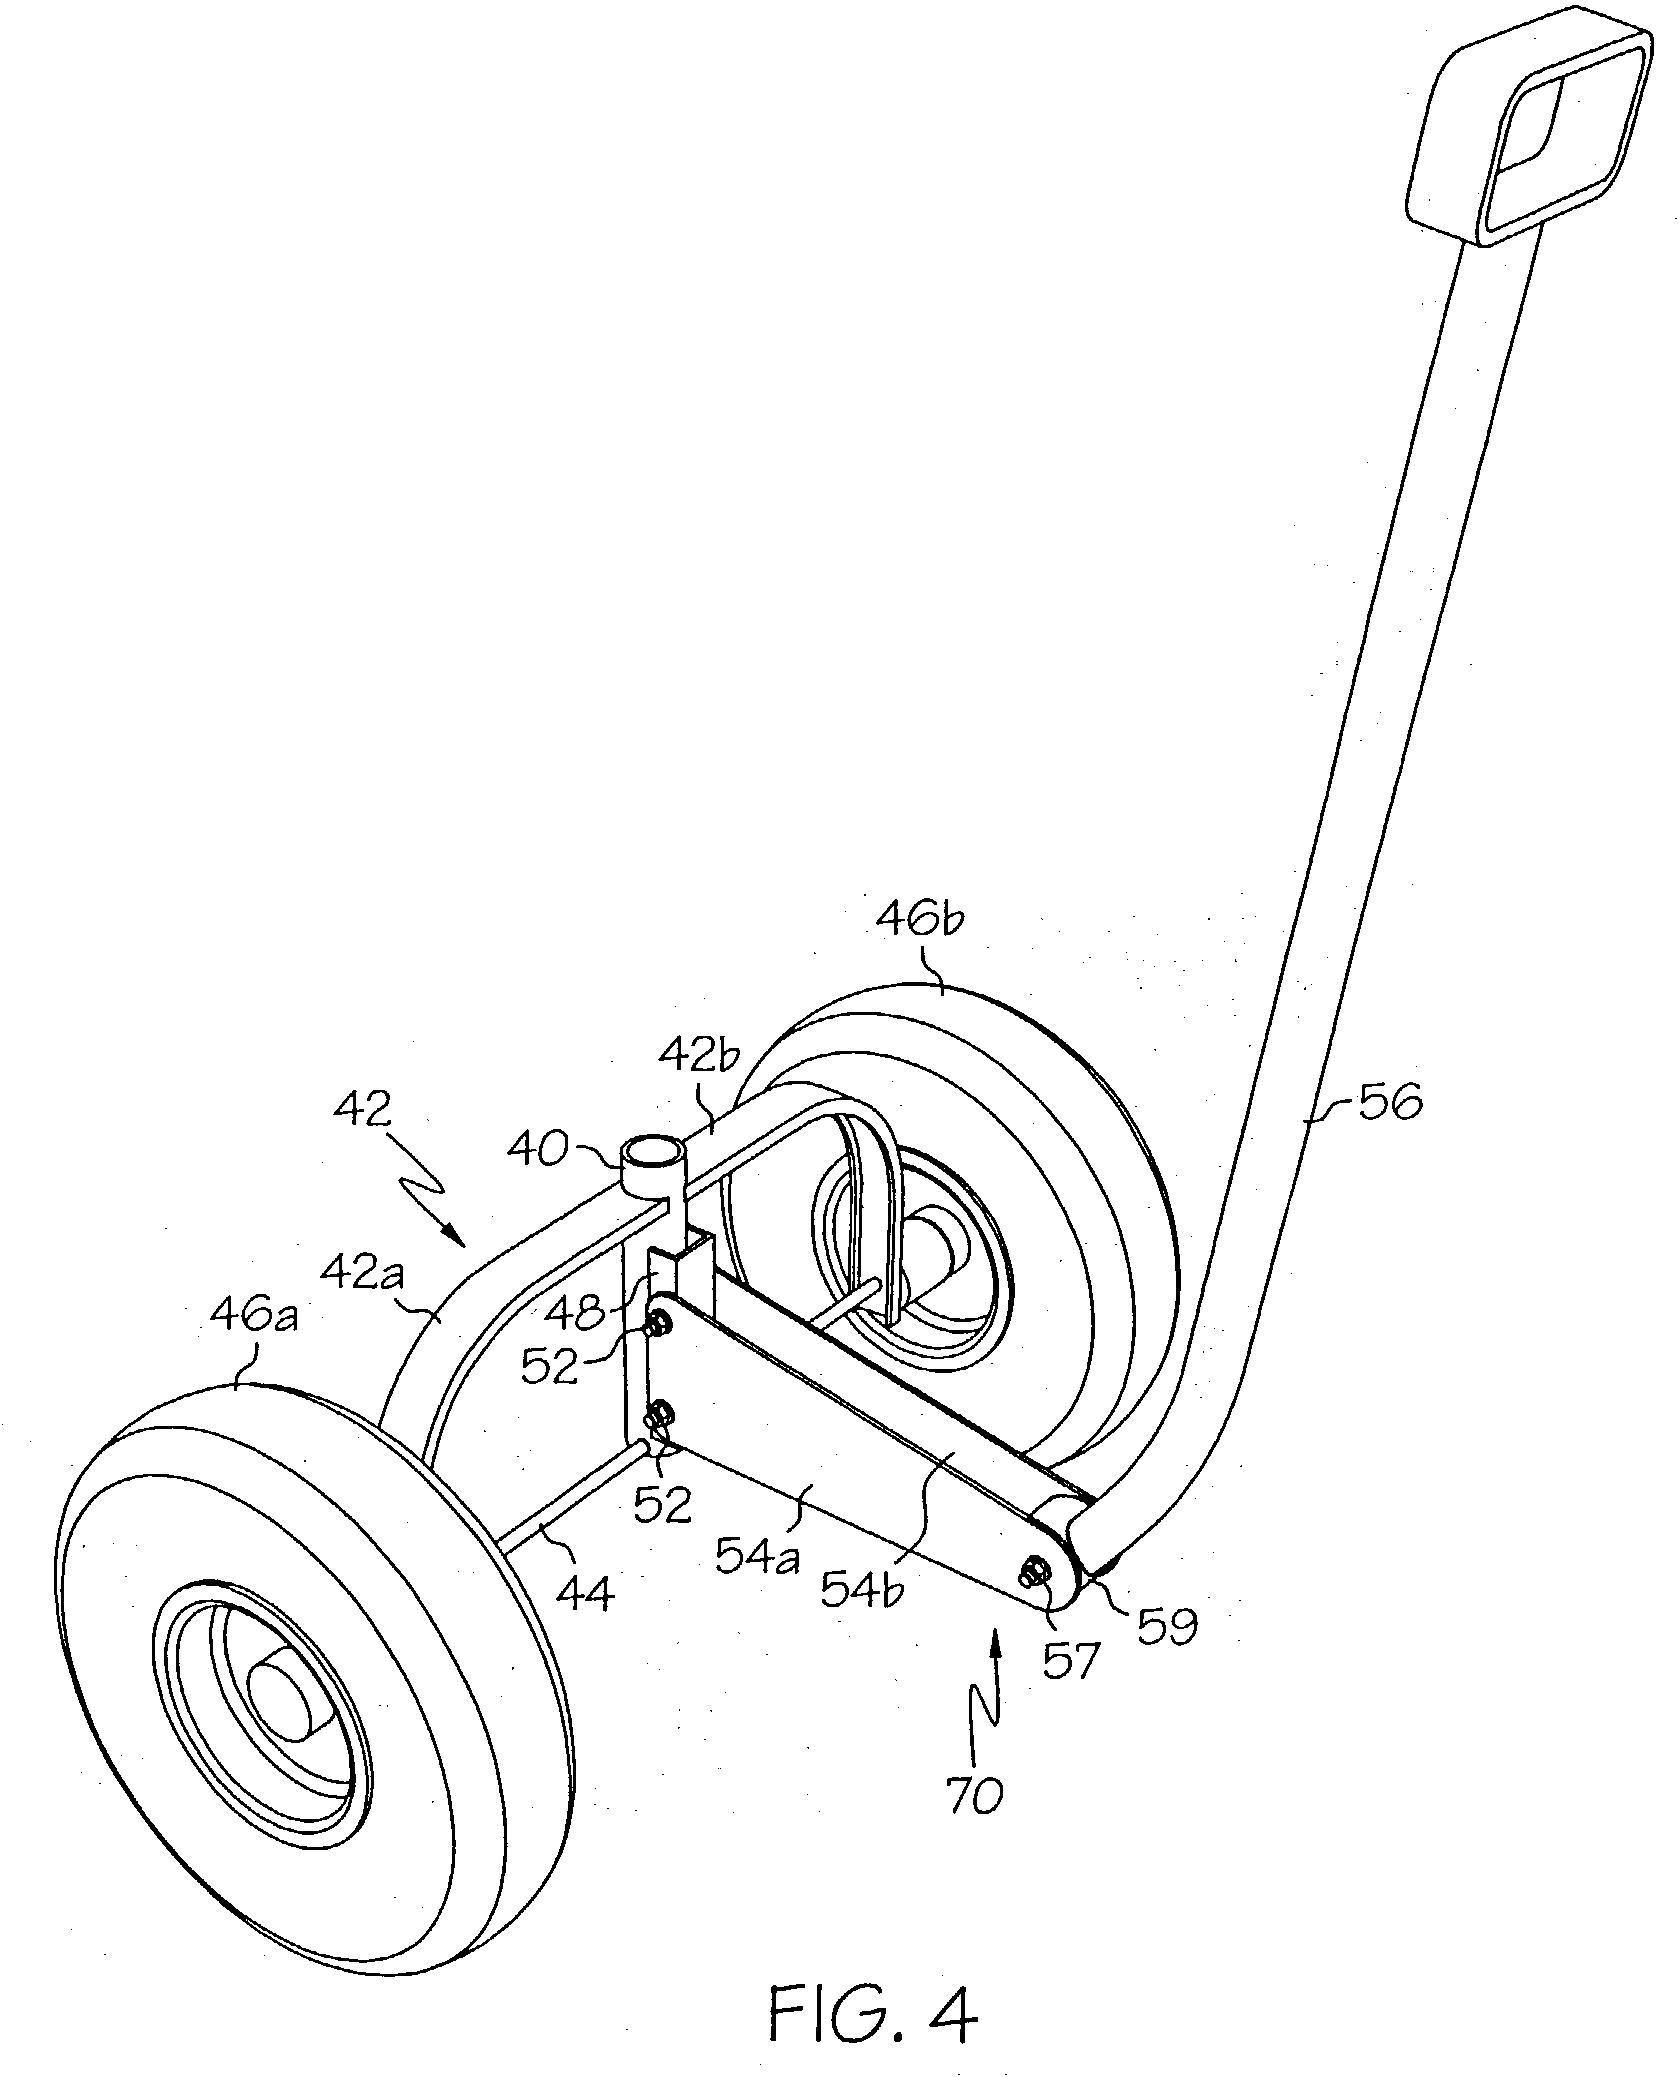 patent us20040164512 wagon and steering assembly patents 24 FT Stake Bed patent drawing